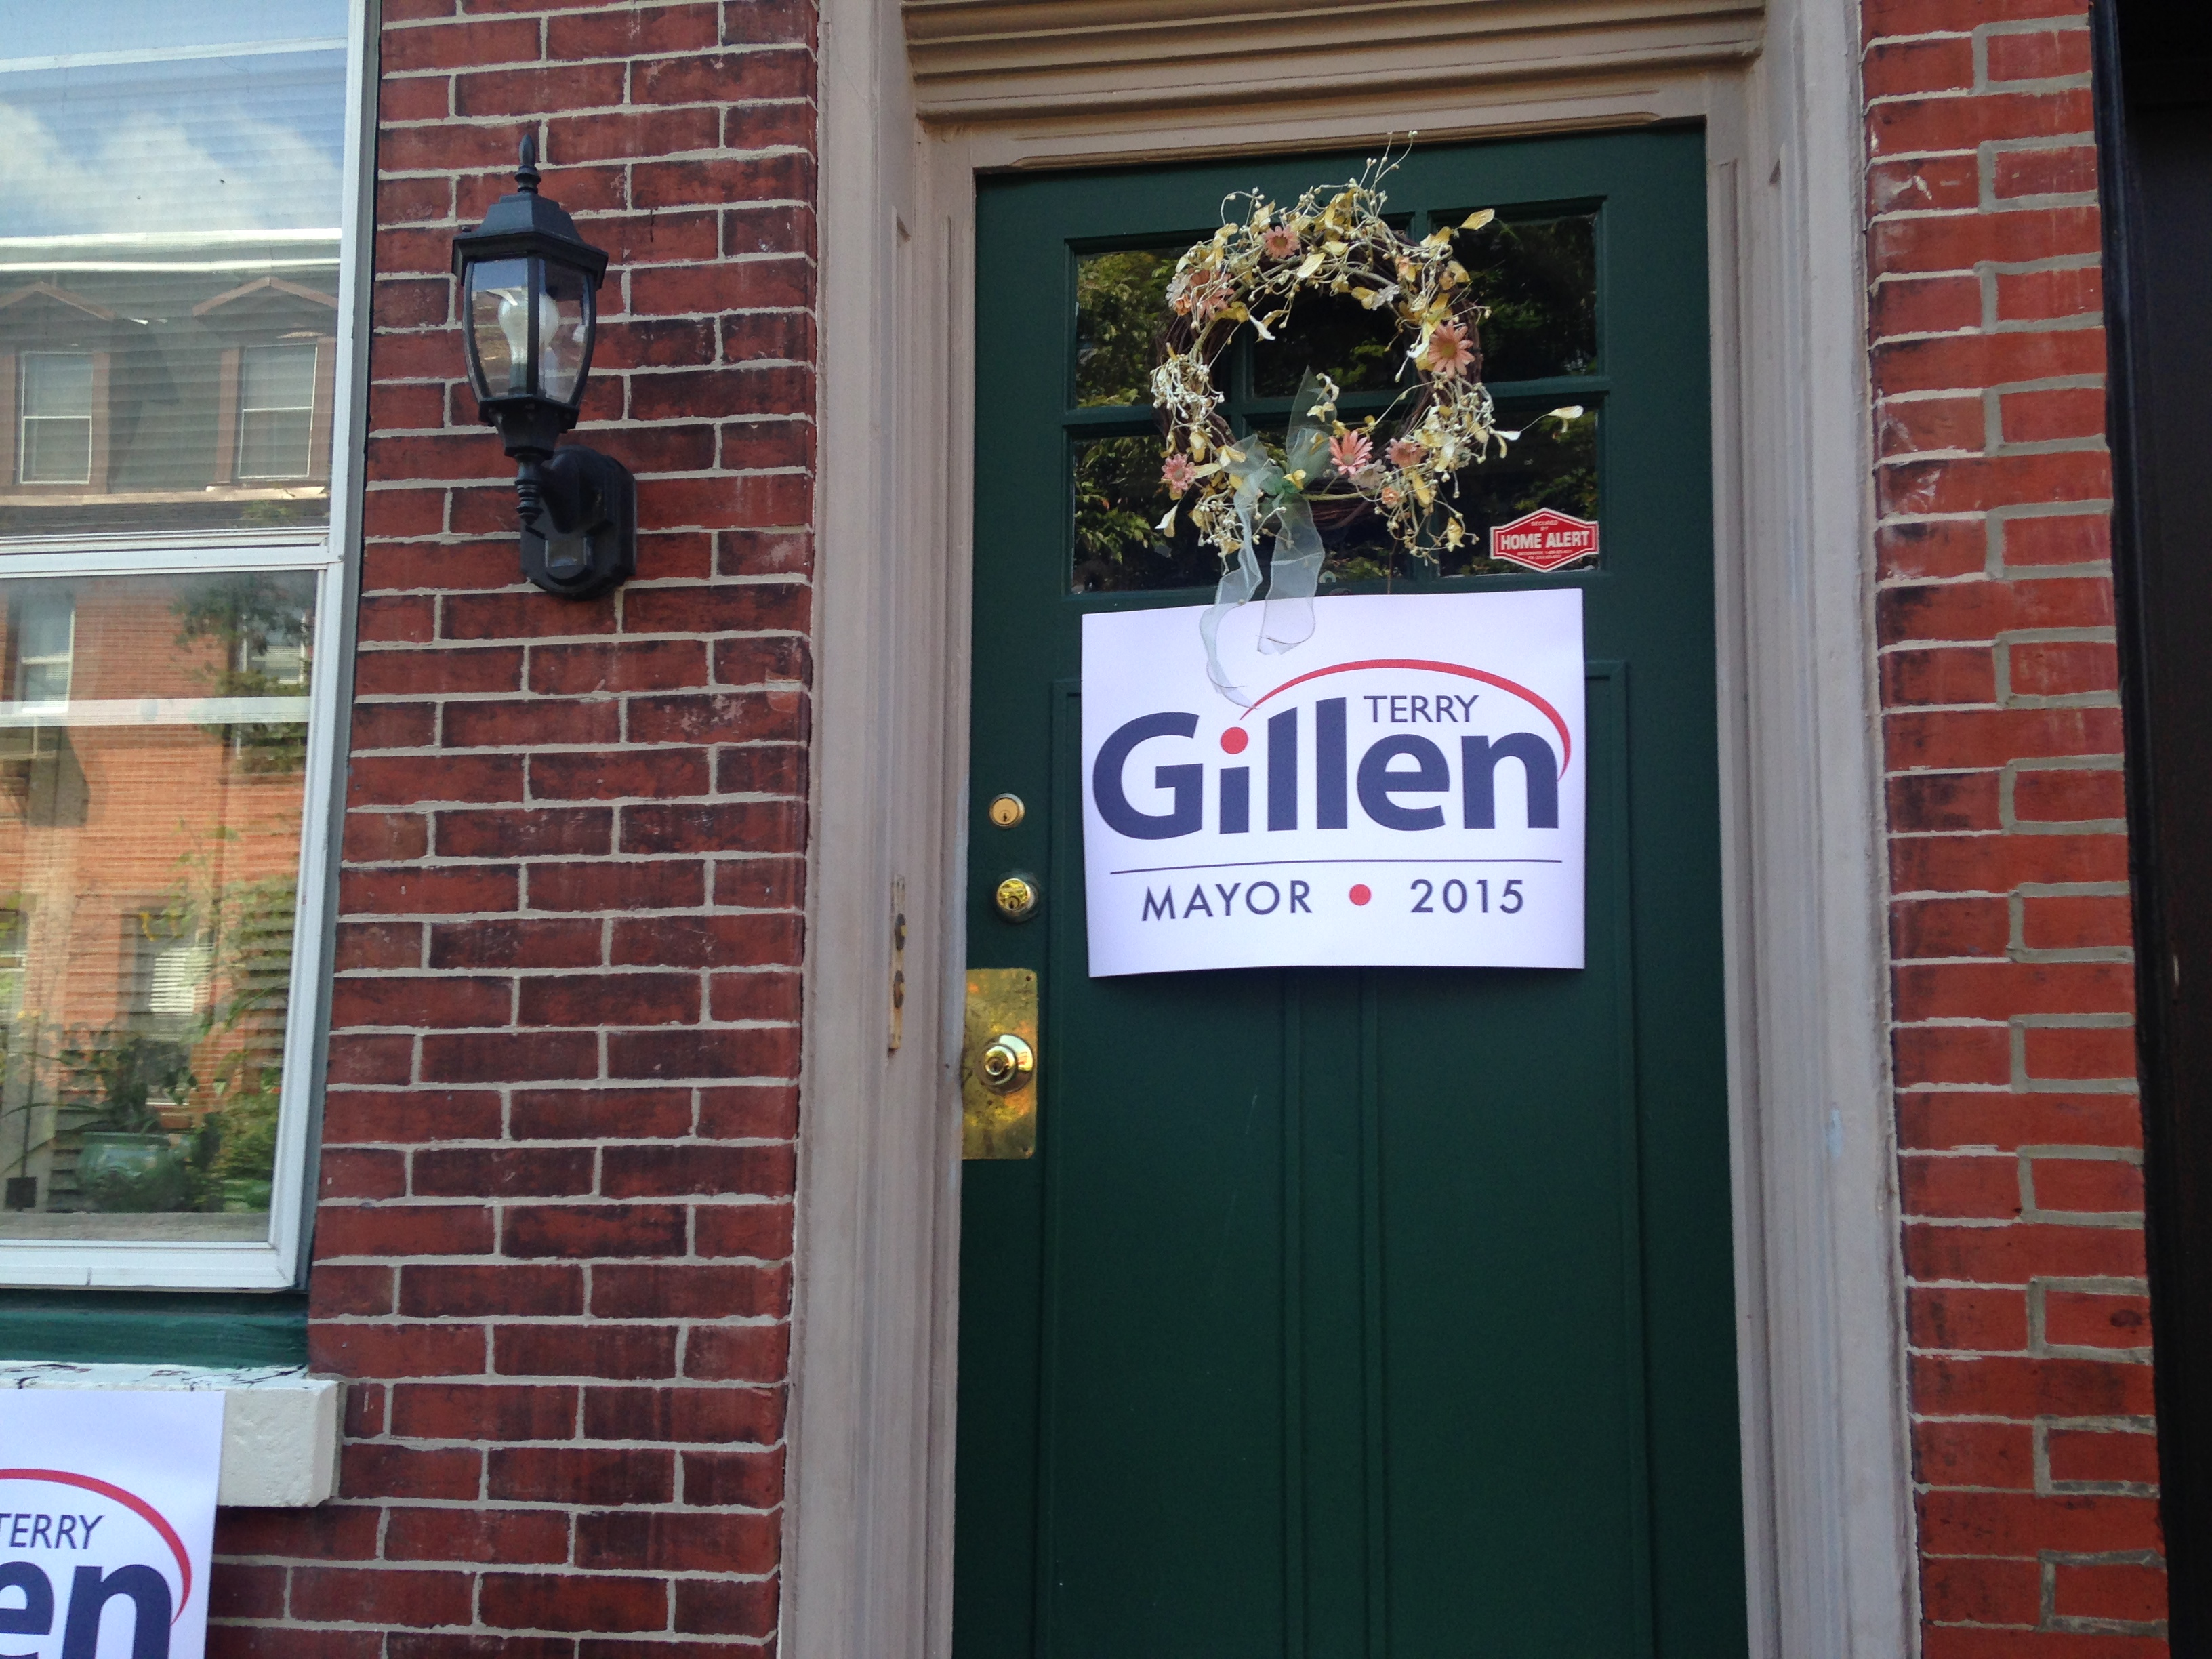 Terry Gillen yard sign